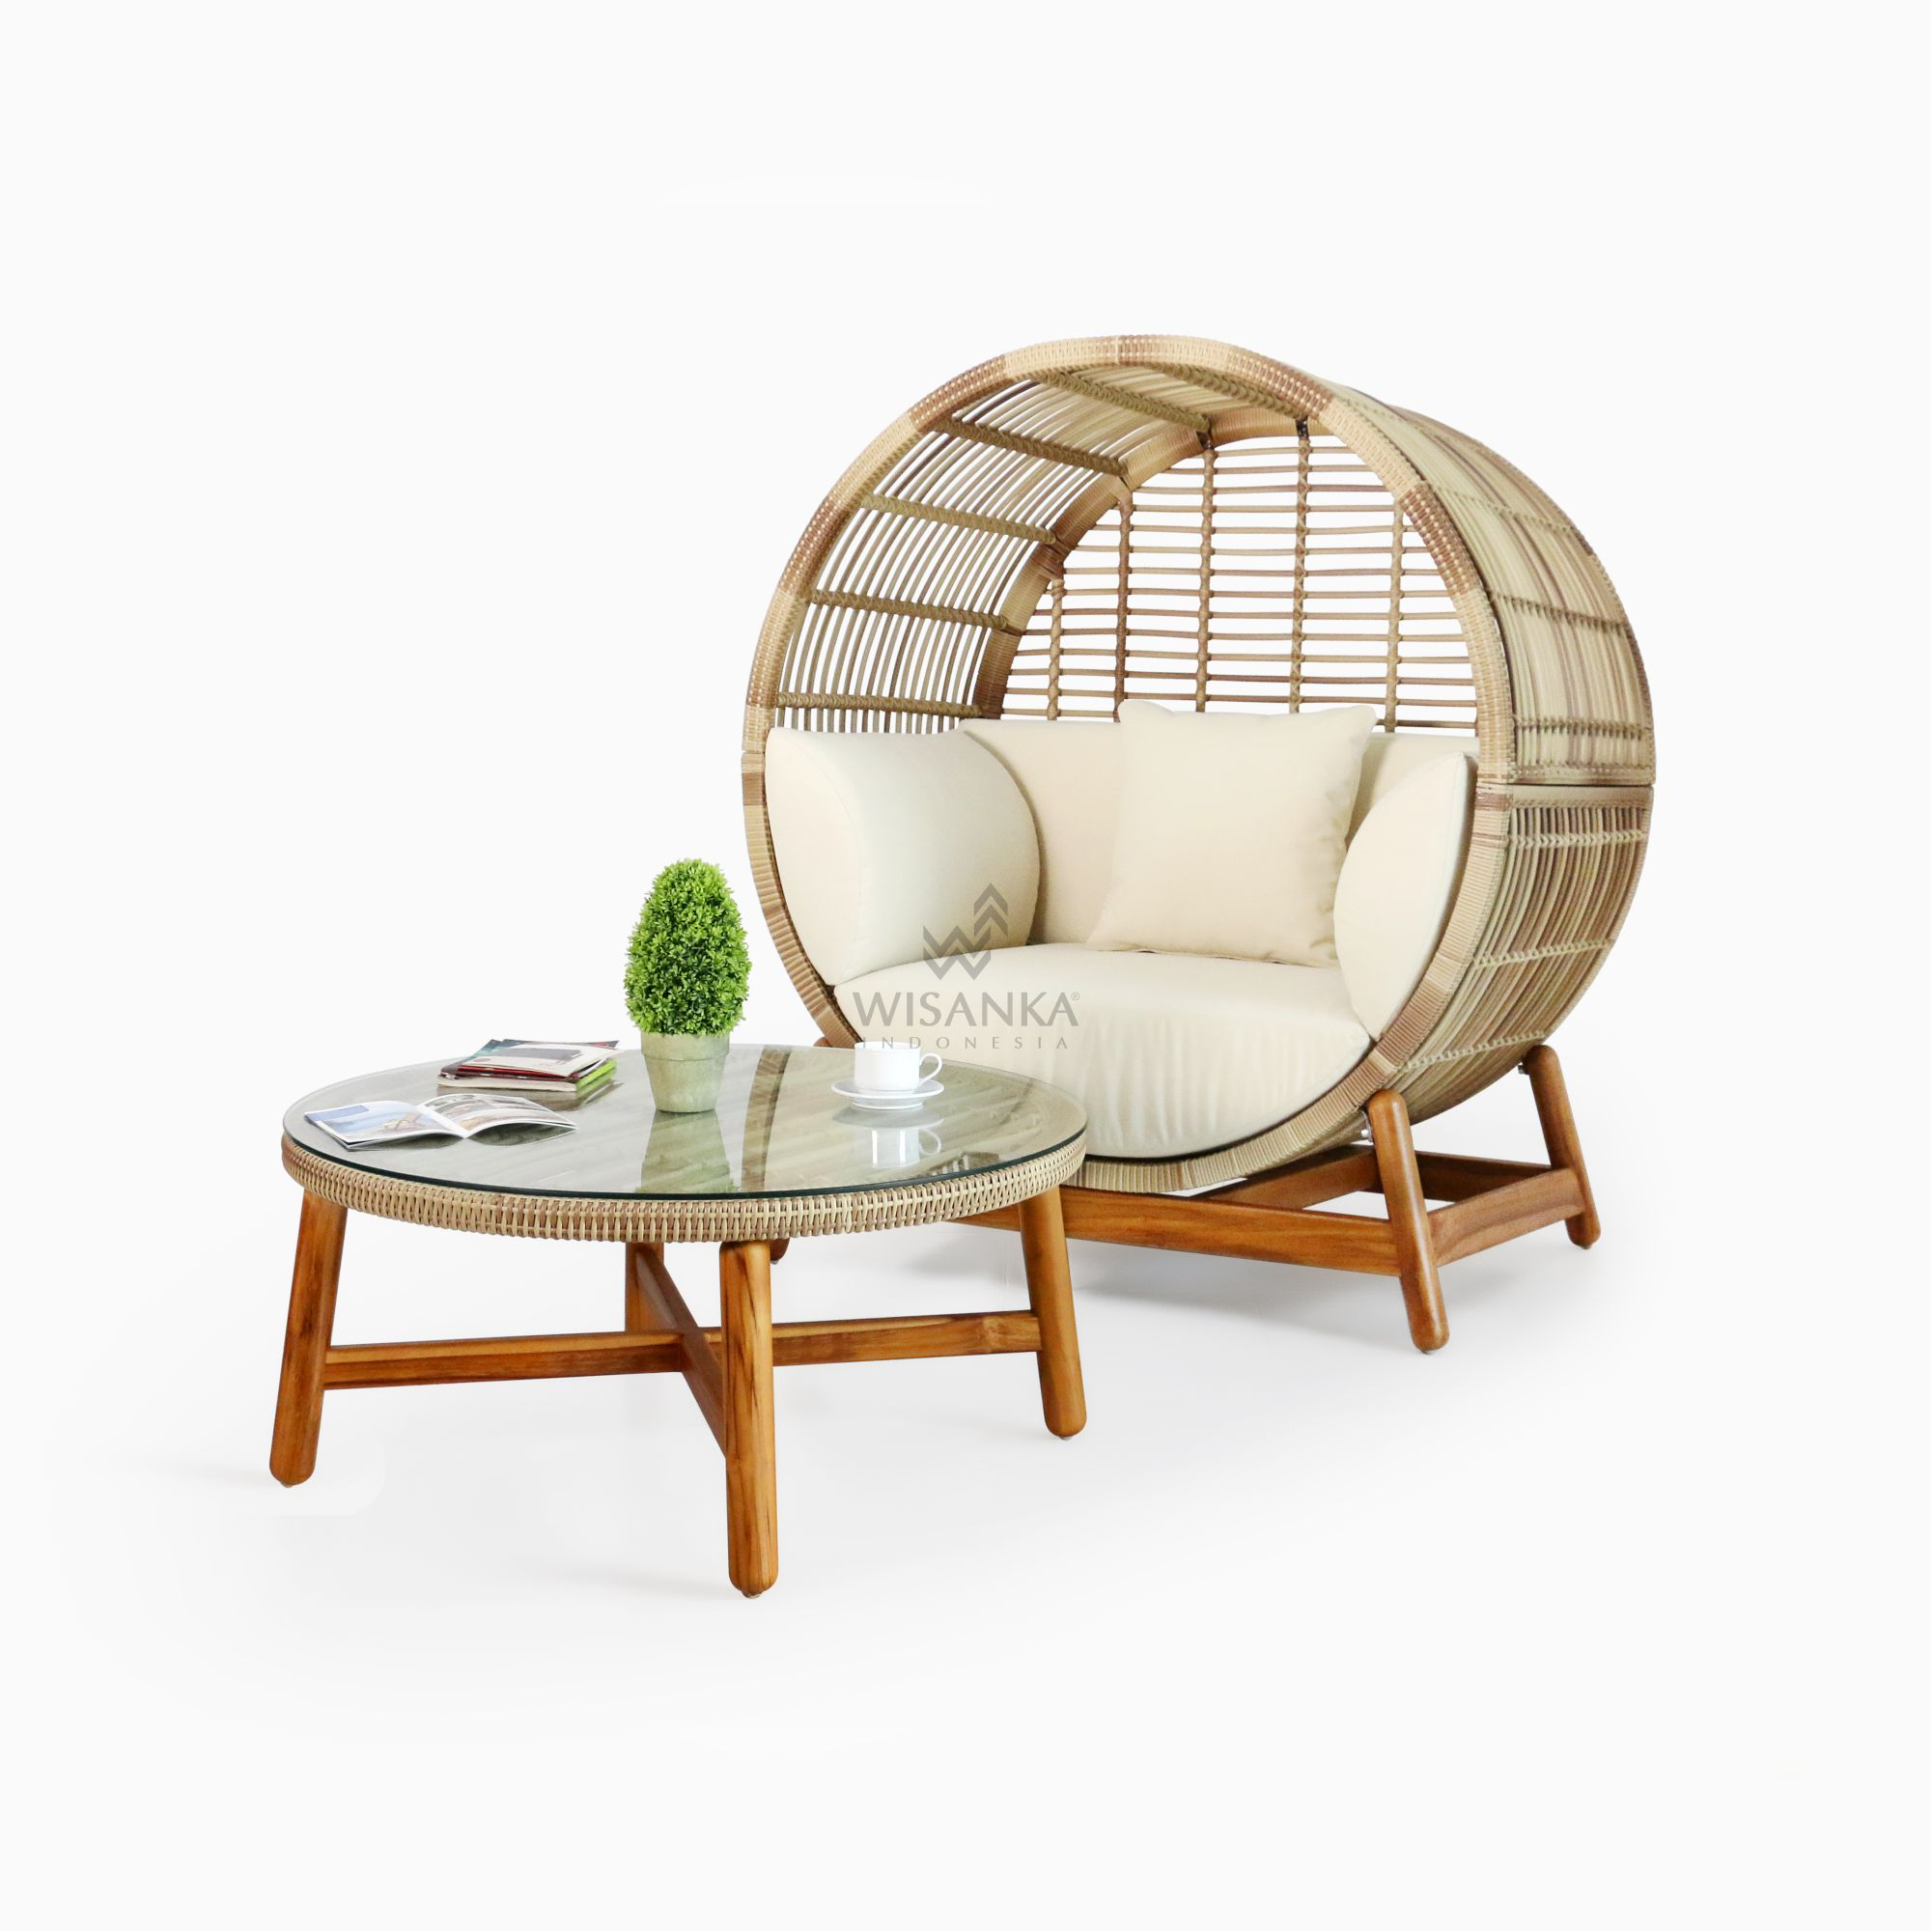 Orza Daybed And Coffe Table Set Outdoor Rattan Garden Patio Furniture